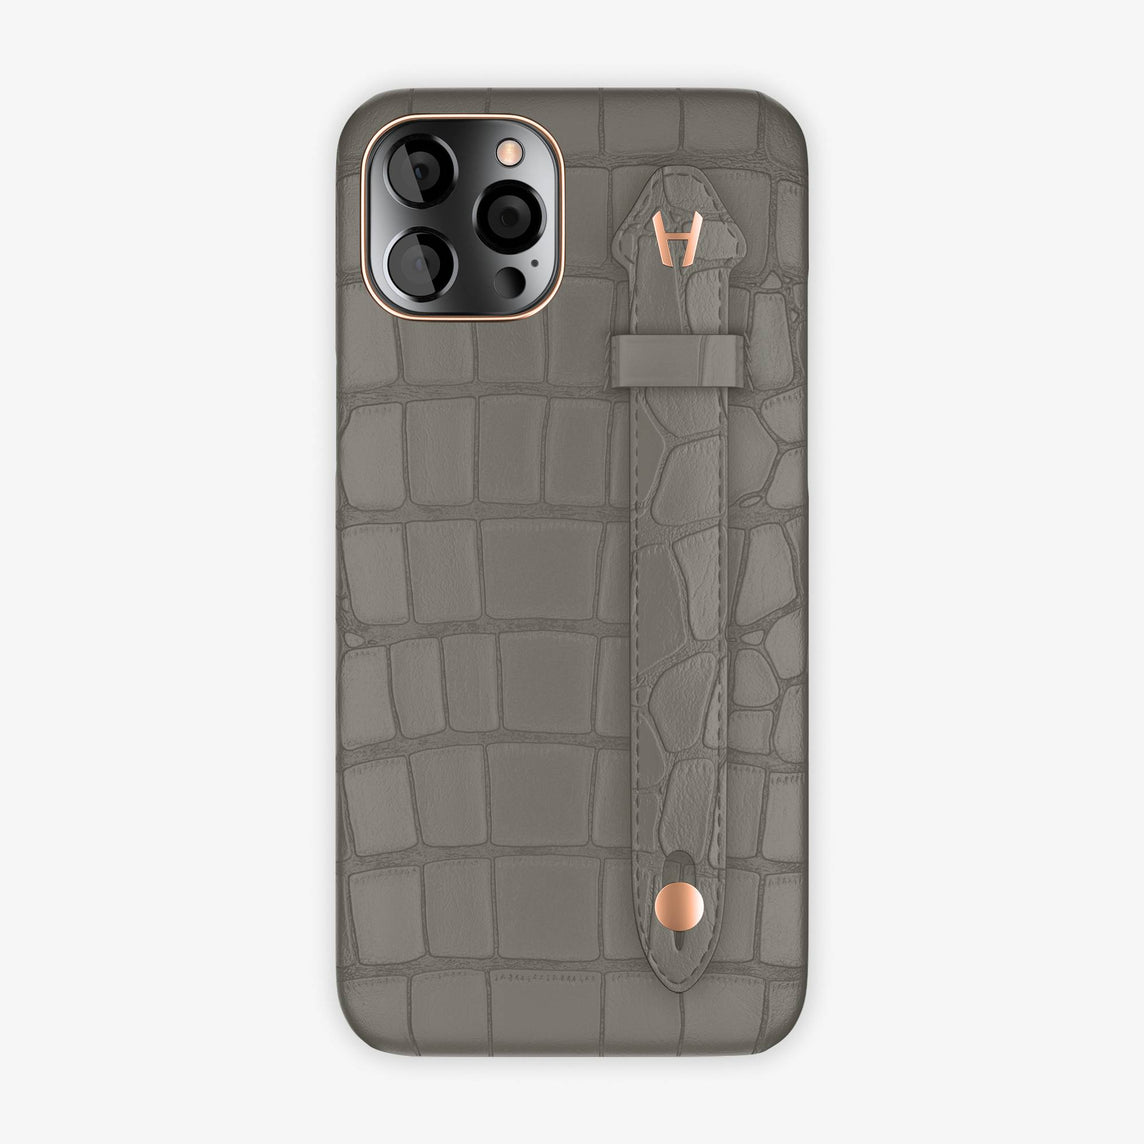 Alligator Side Finger Case iPhone 12 Pro Max | Pearl Grey/Grey - Rose Gold